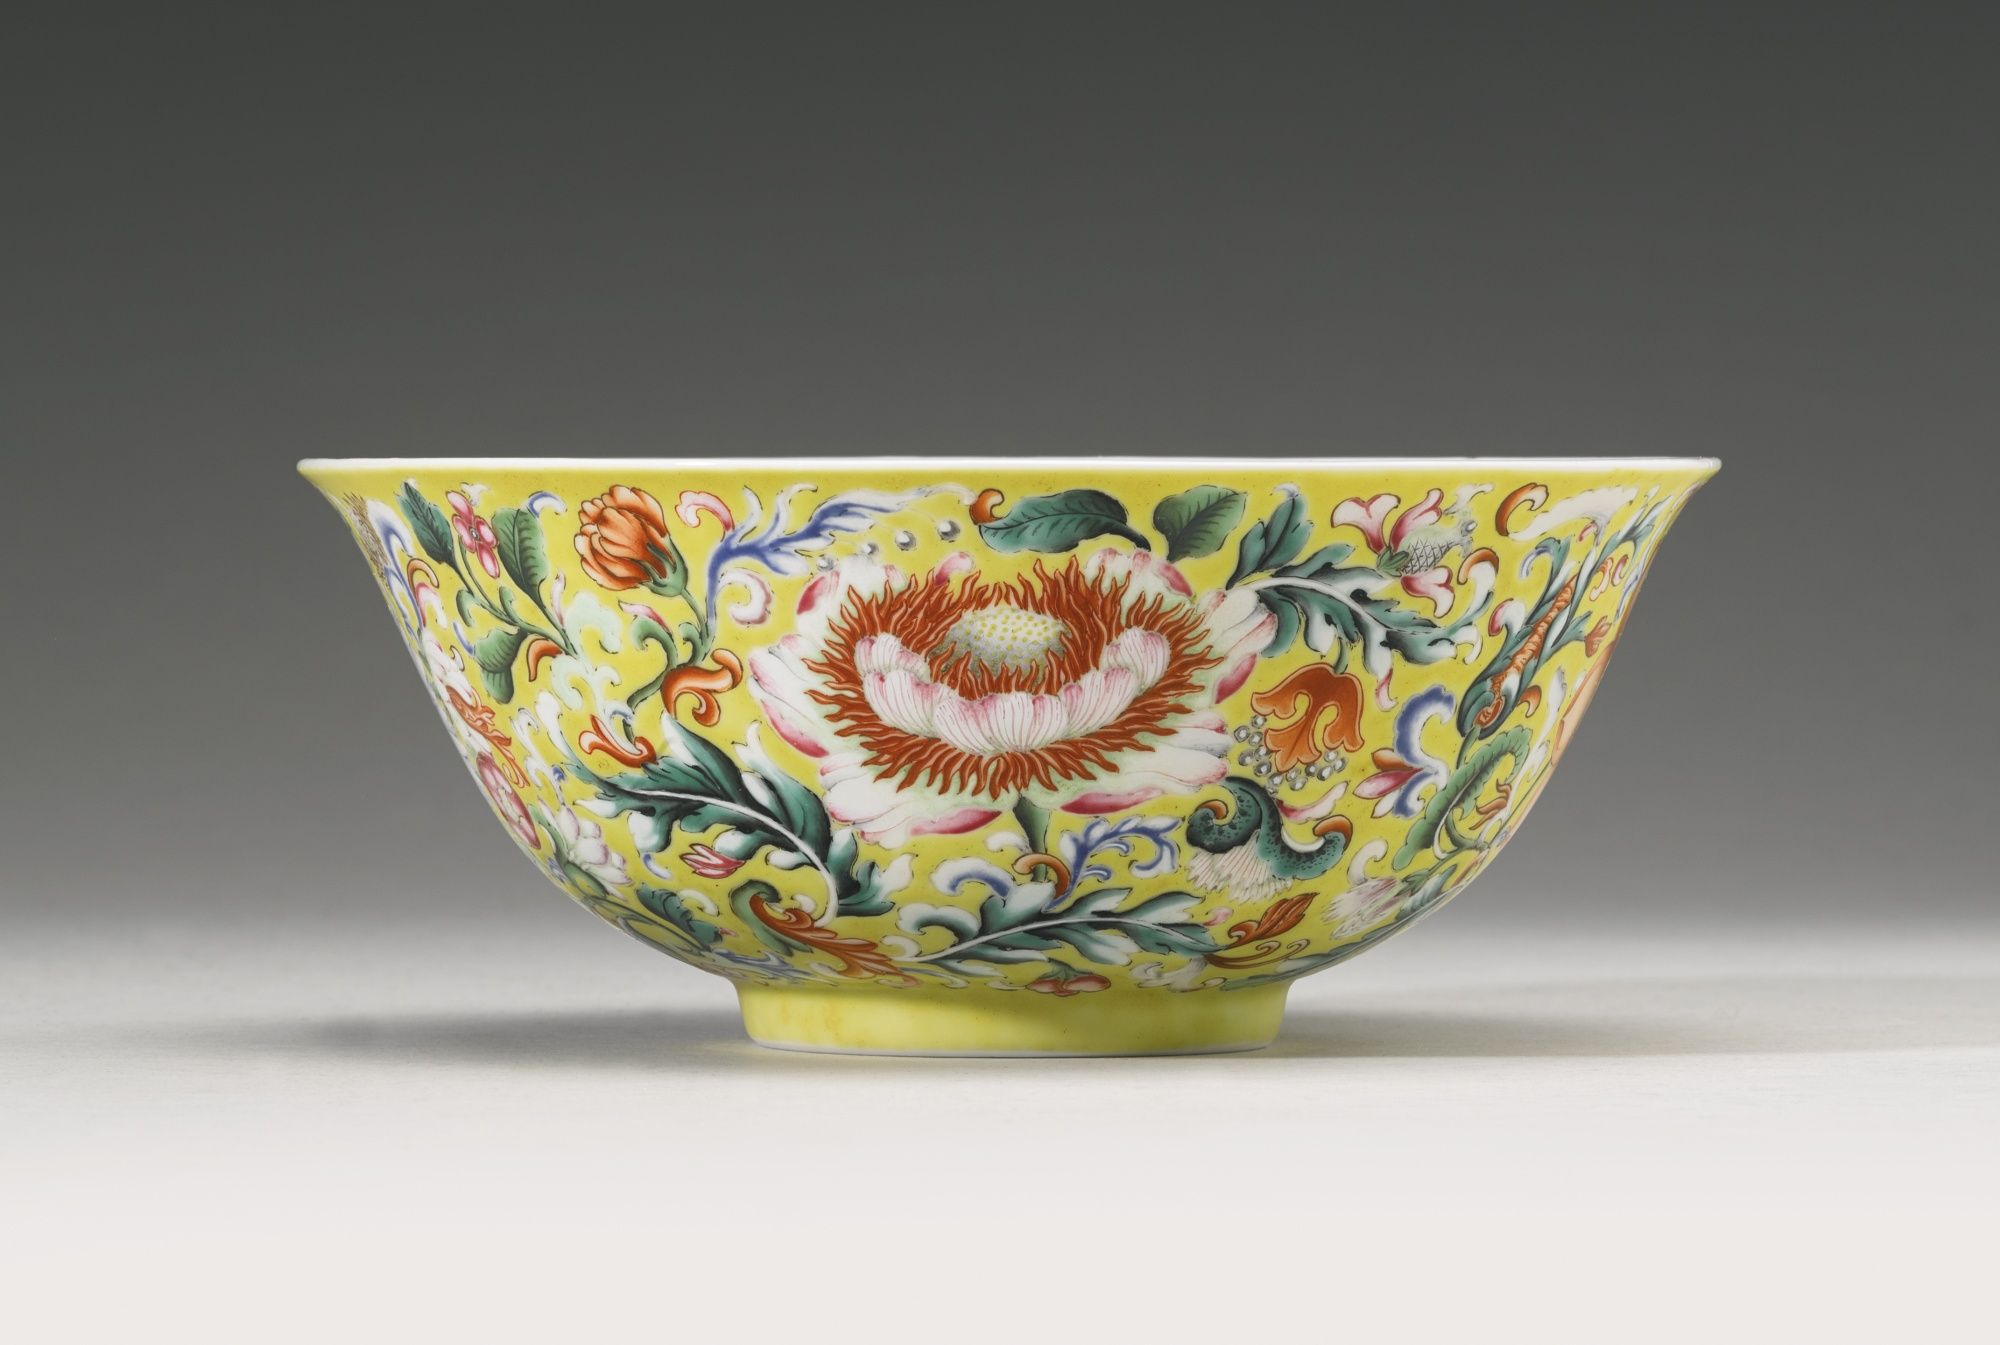 A fine and rare yellow-ground enameled 'Floral' bowl, Qianlong seal mark and period